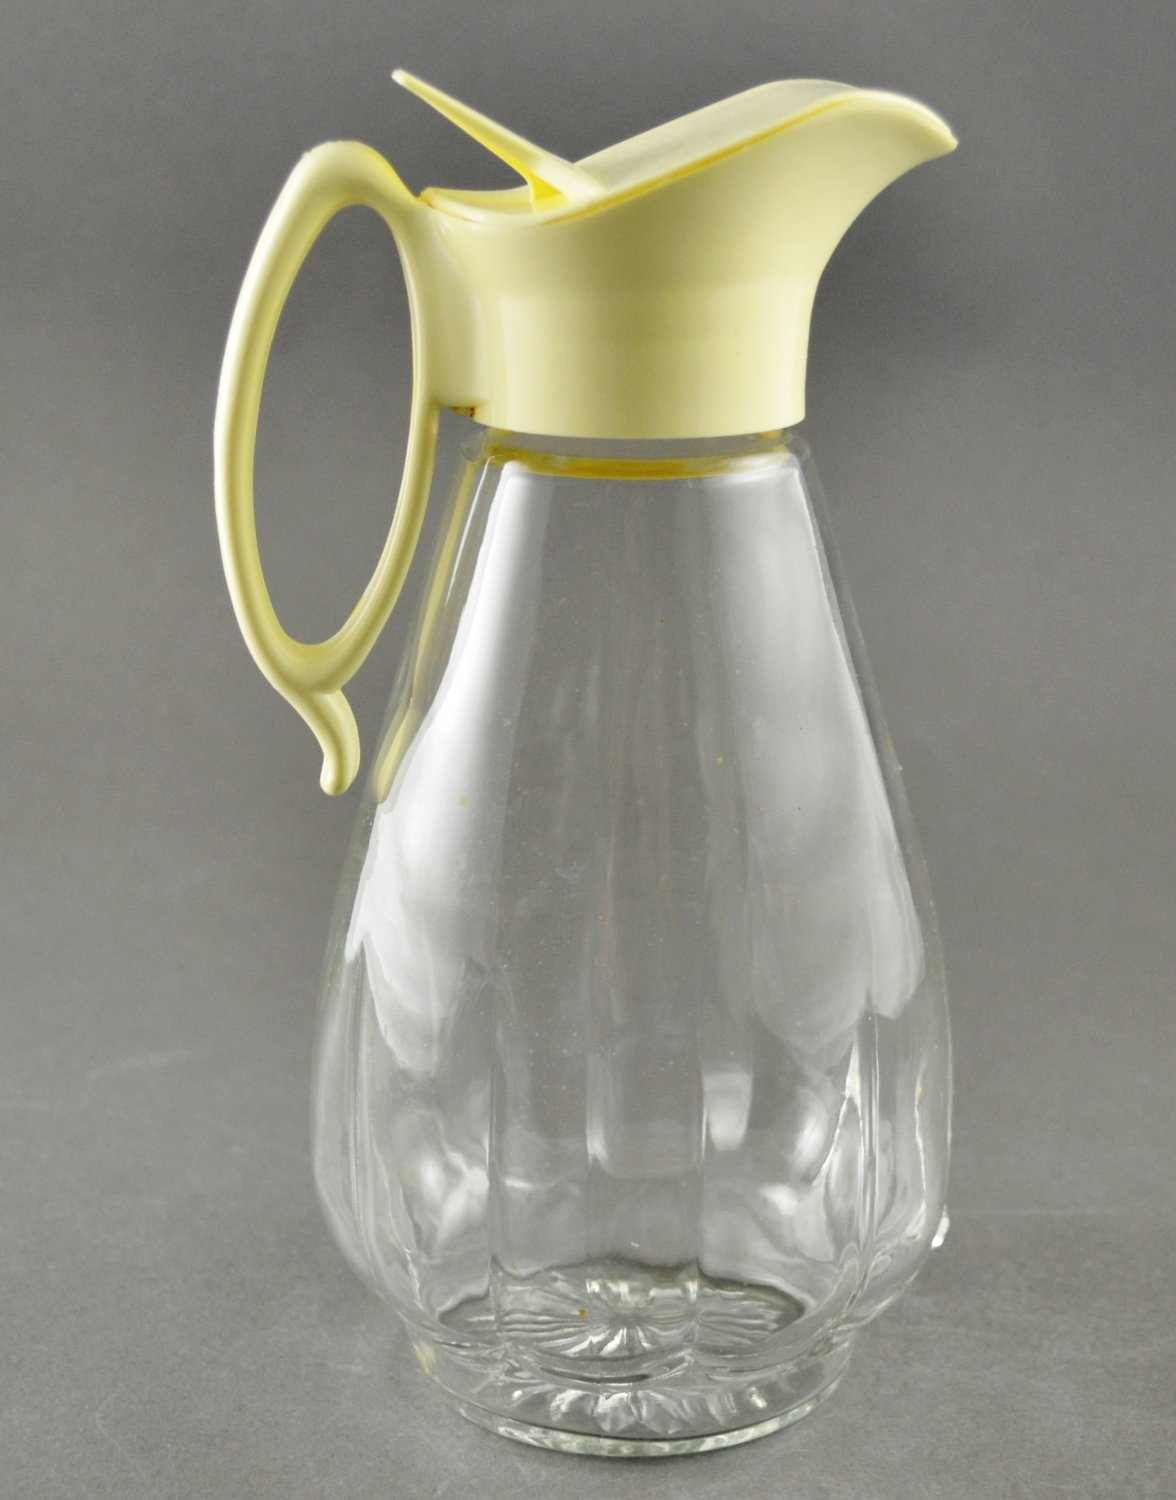 Vintage Mid-Century Glass Syrup Jar Dispenser w/ Plastic Lid